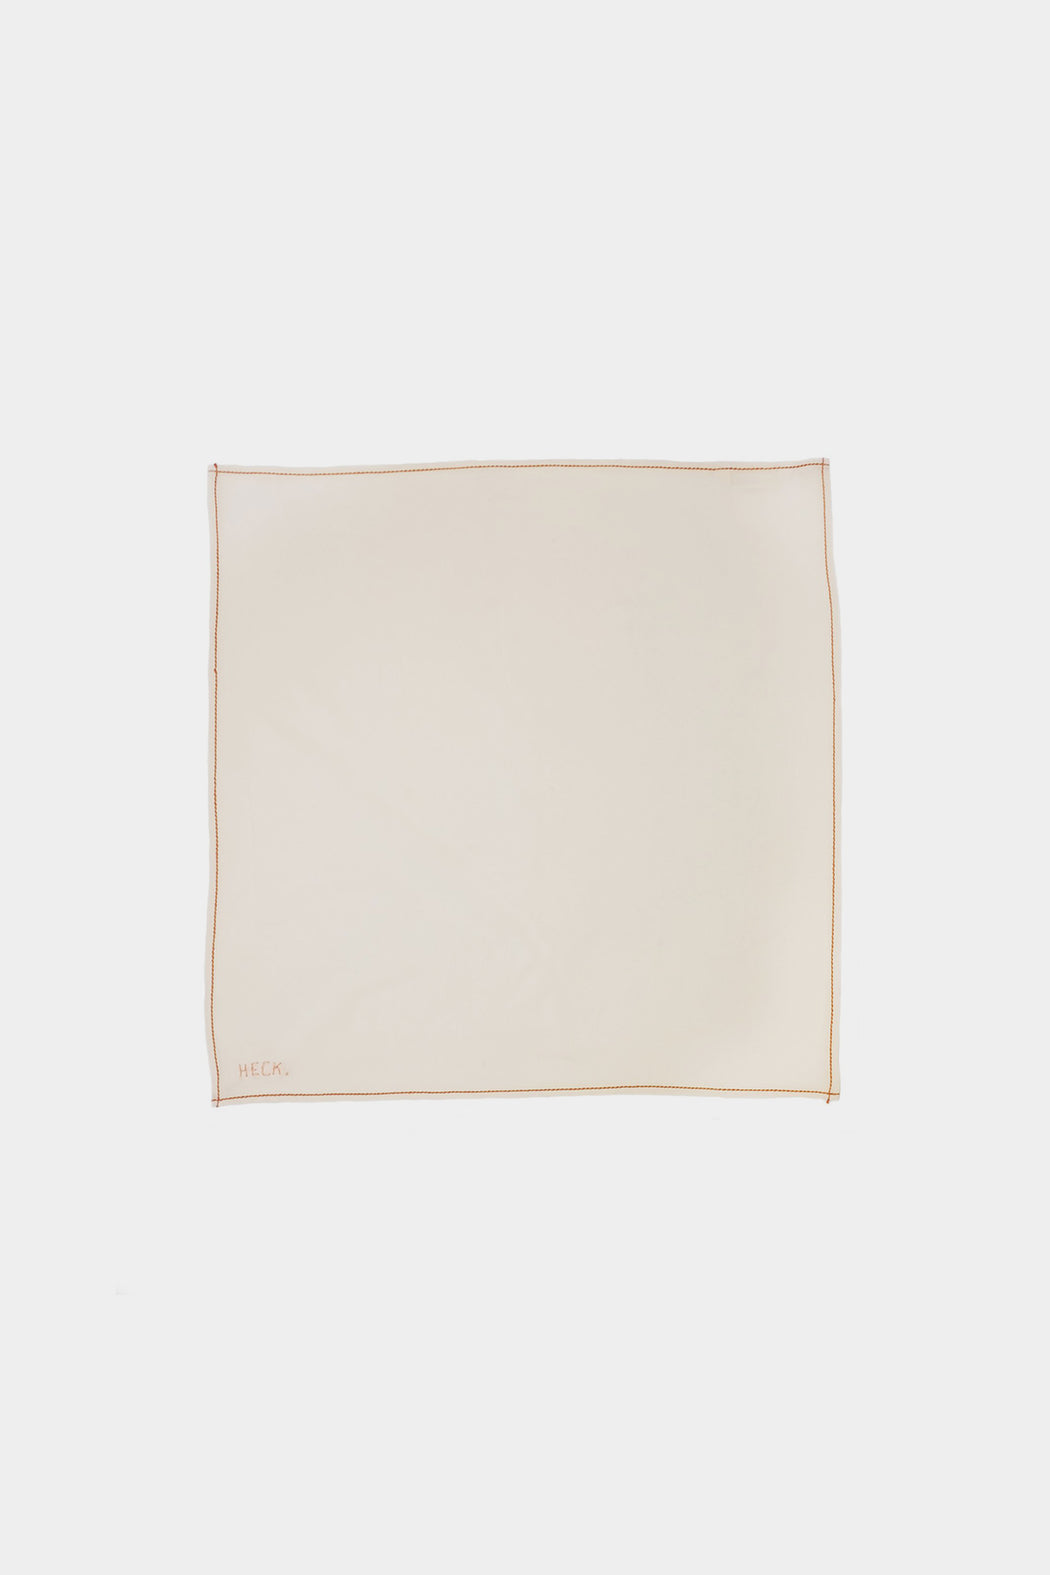 Heck Scarf | Cream Silk